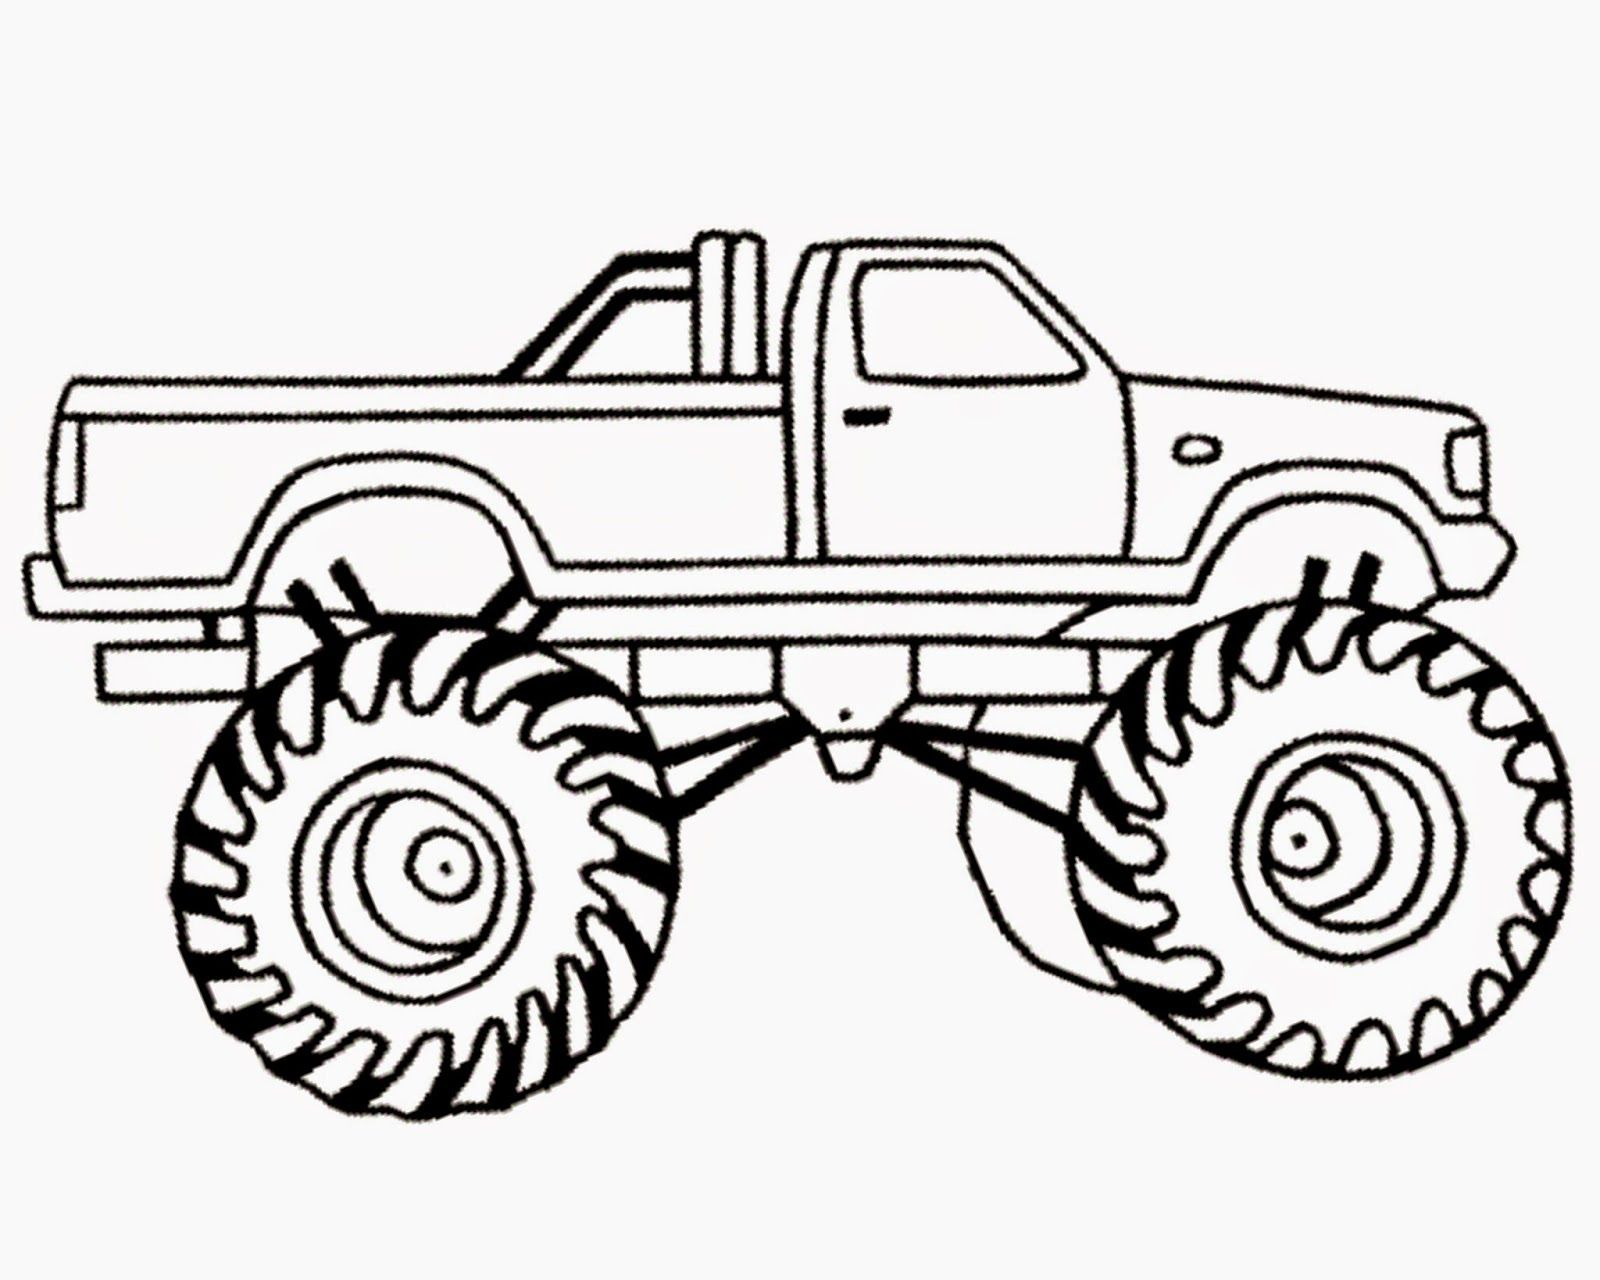 Monster Truck Coloring Pages Free Http Www Wallpaperartdesignhd Us Monster Truck Col Monster Truck Coloring Pages Truck Coloring Pages Monster Truck Birthday